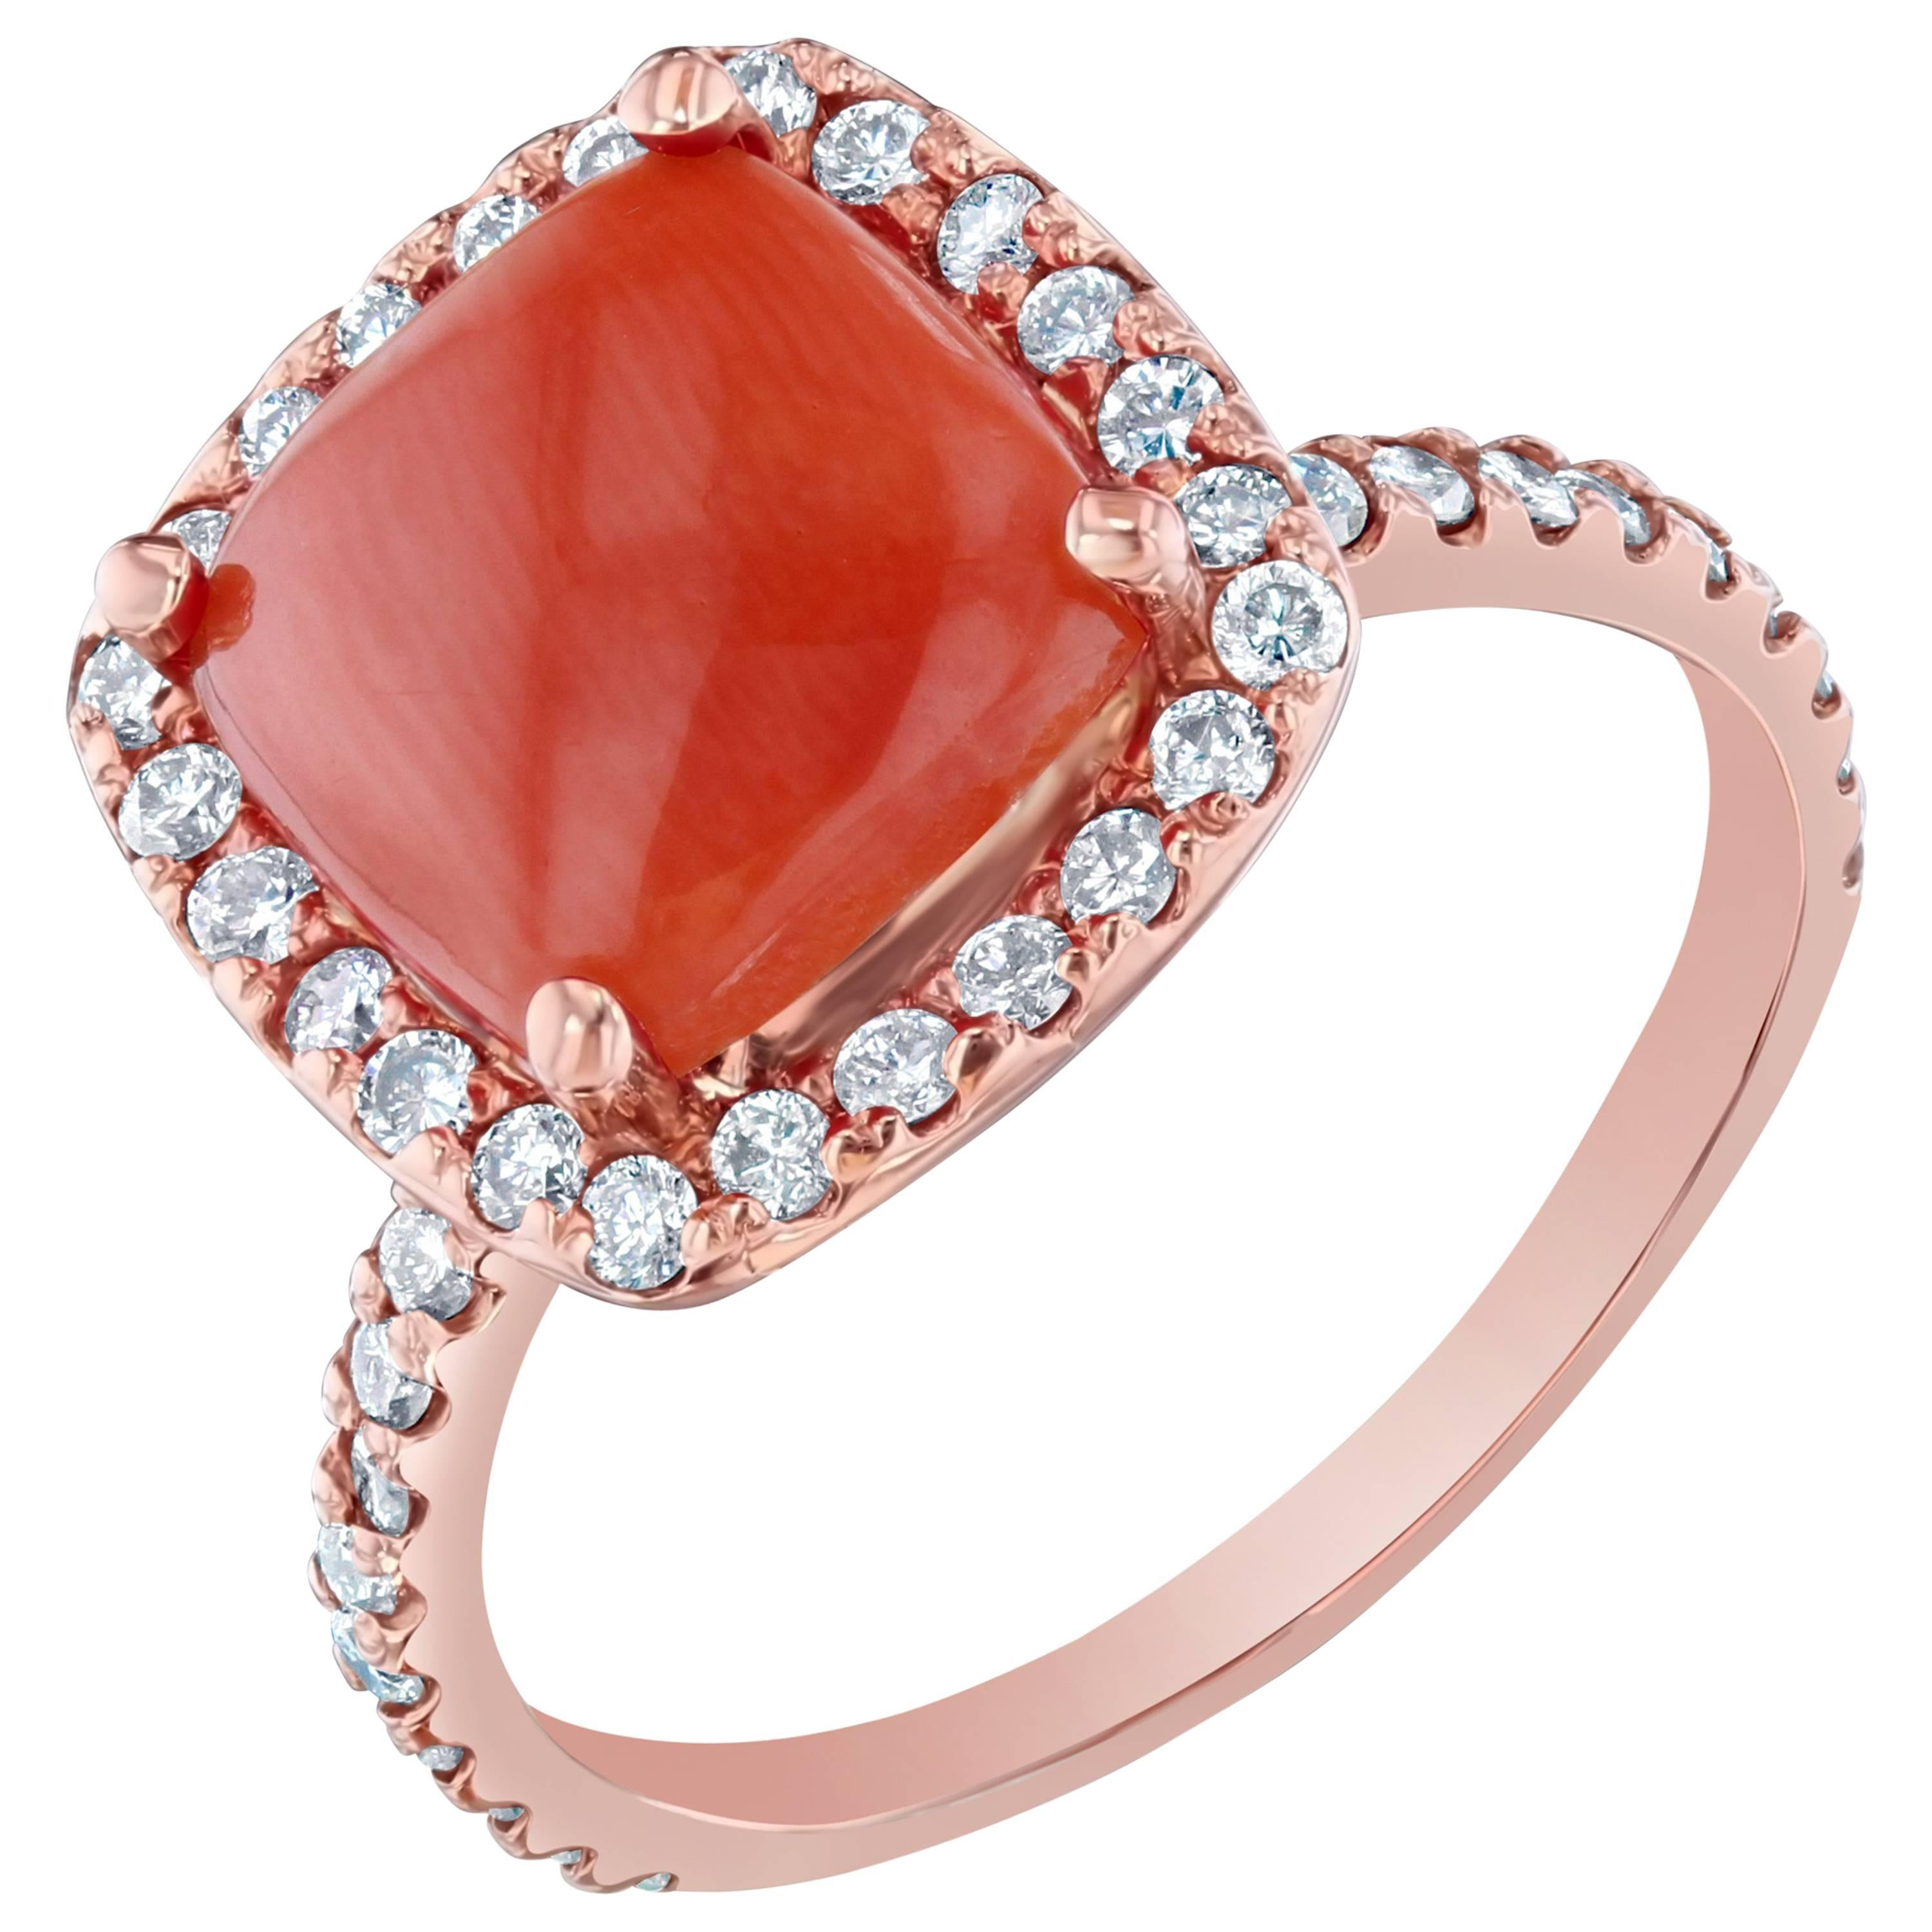 330 Carat Coral Diamond Ring For Sale at 1stdibs